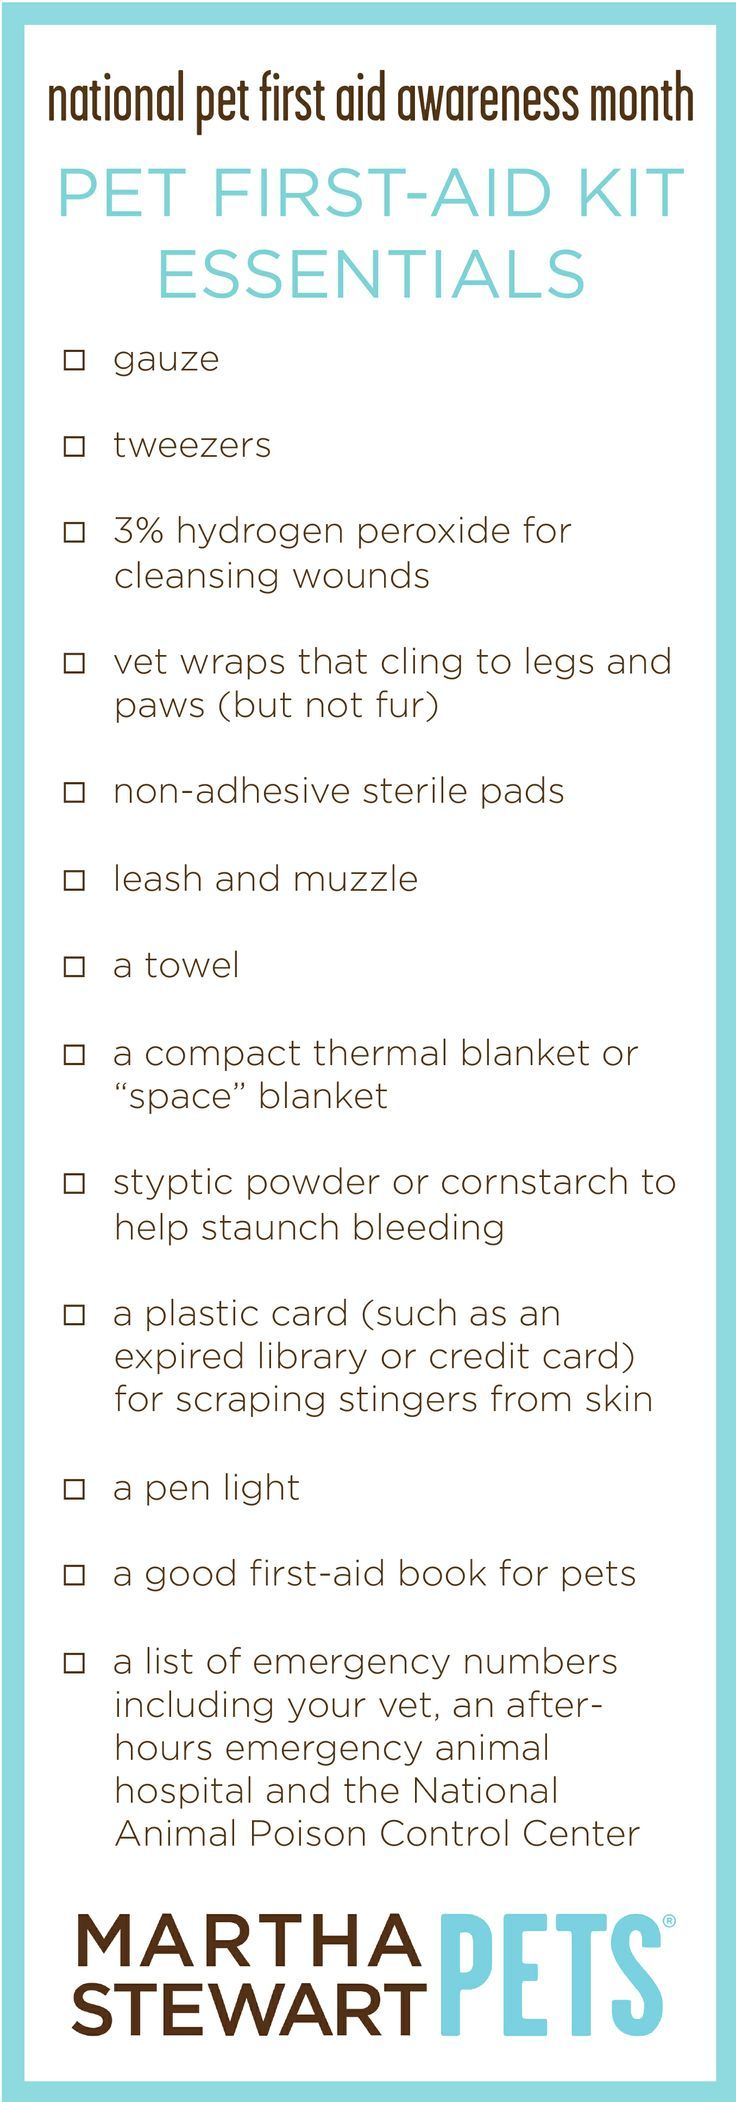 Did you know April is National Pet First Aid Awareness Month? Make sure you are prepared for any pet emergency with this printable checklist.